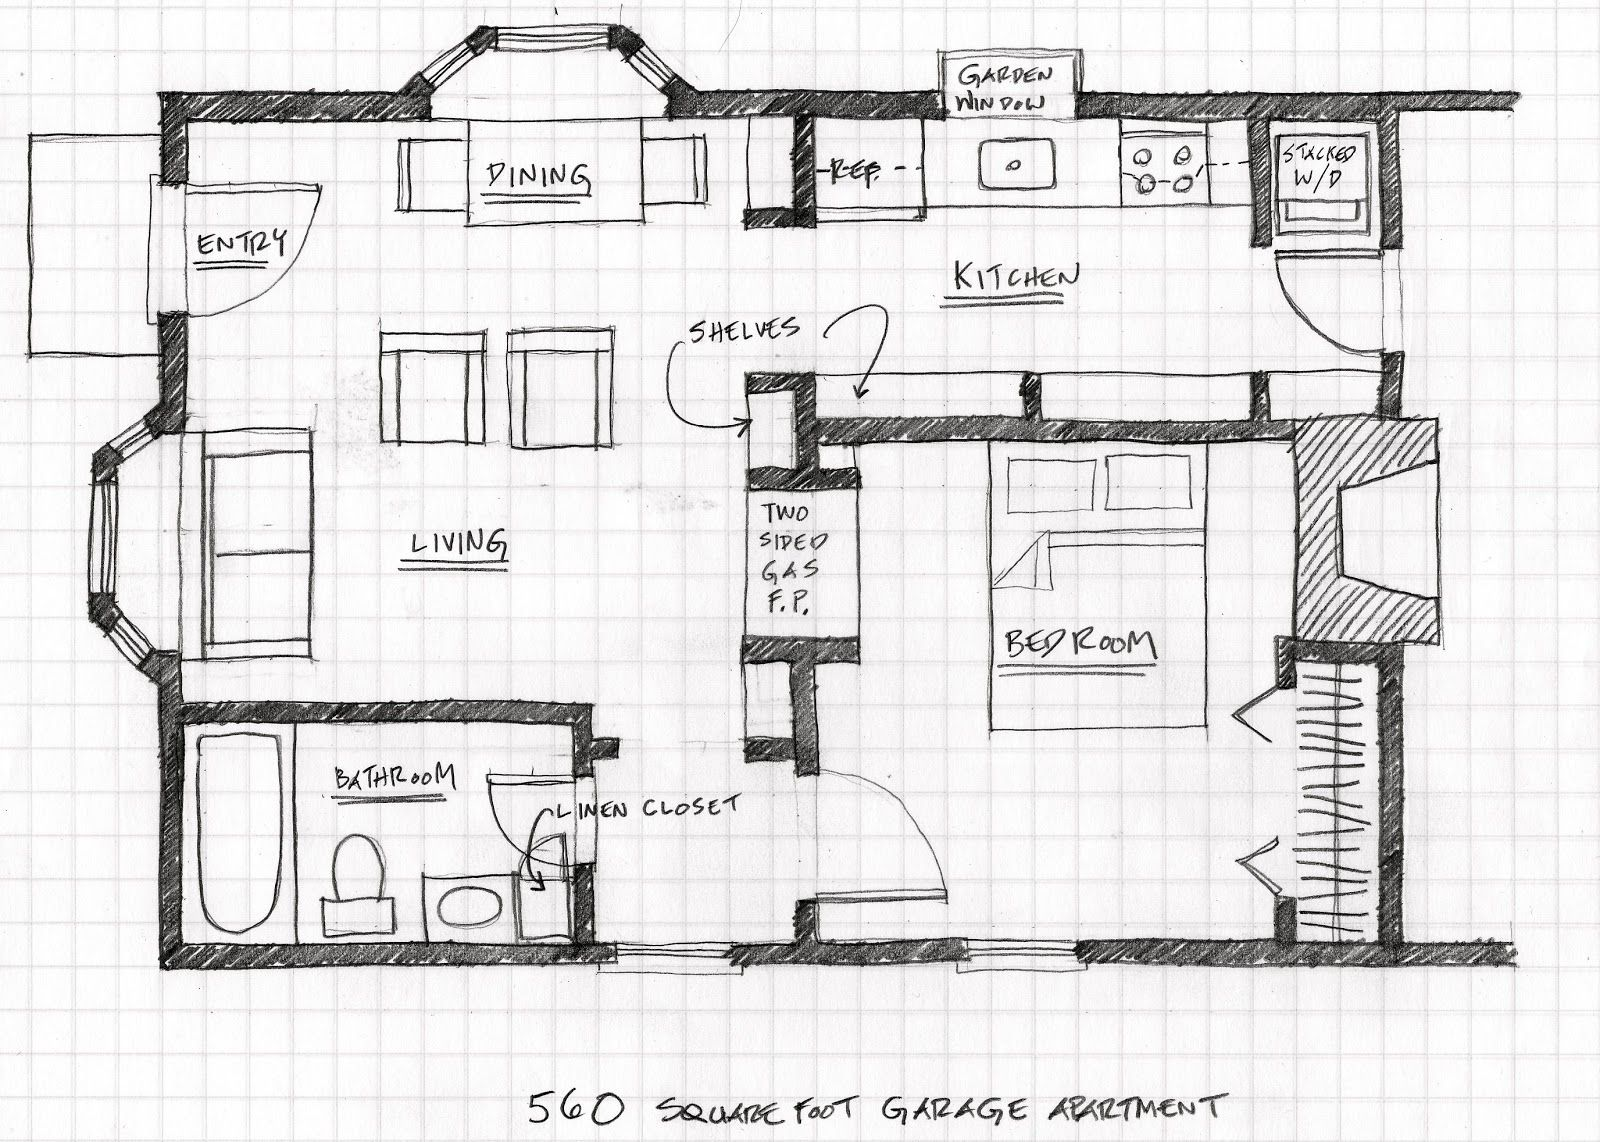 Garage Apartment Eplans Small Scale Homes Floor Plans For Garage To Apartment Conversion